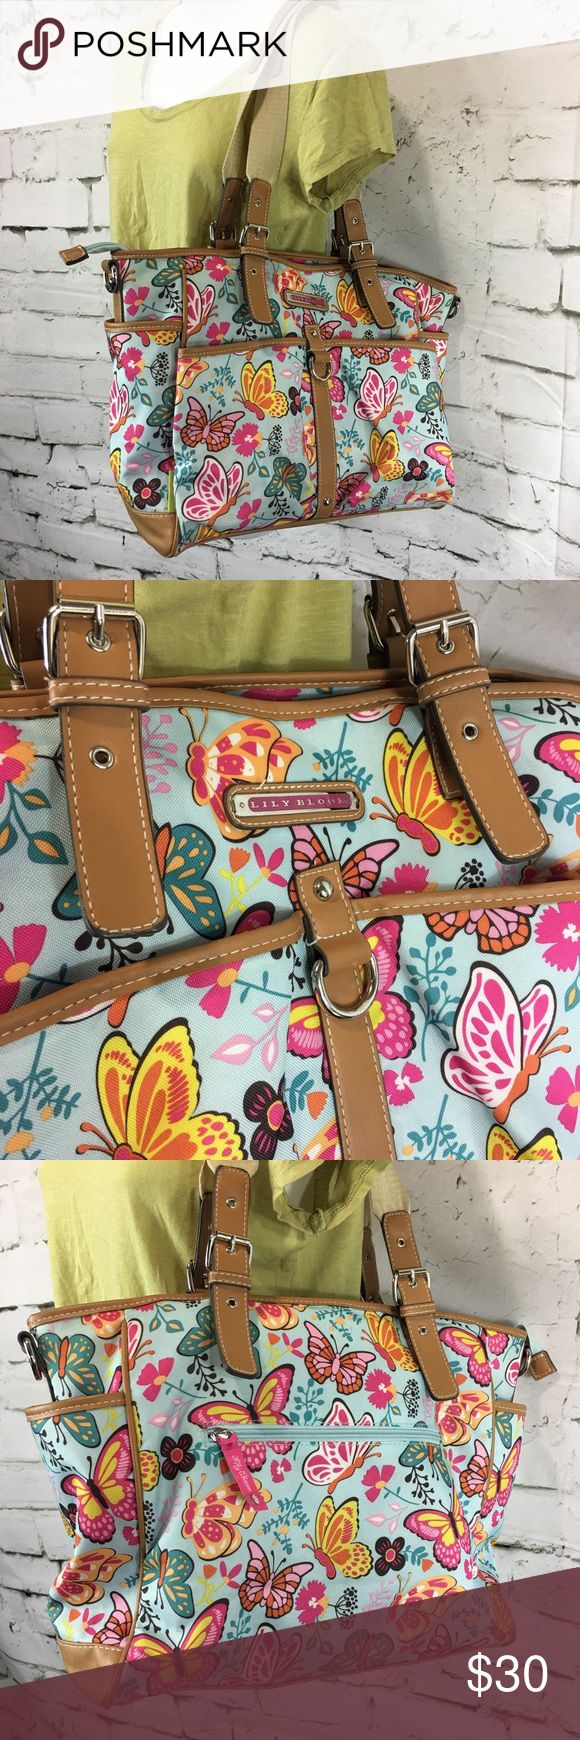 Lilly Bloom Butterfly Floral Print Large Purse 👛 Lilly Bloom Butterfly Floral Print Large Shoulder Bag Multi Color Purse Handbag 3 large compartments, key hook, several small interior pockets 5 outer pockets / pouches Could double for a great diaper bag There are a couple small spots on interior (see pic) Overall nice condition Lily Bloom Bags Shoulder Bags